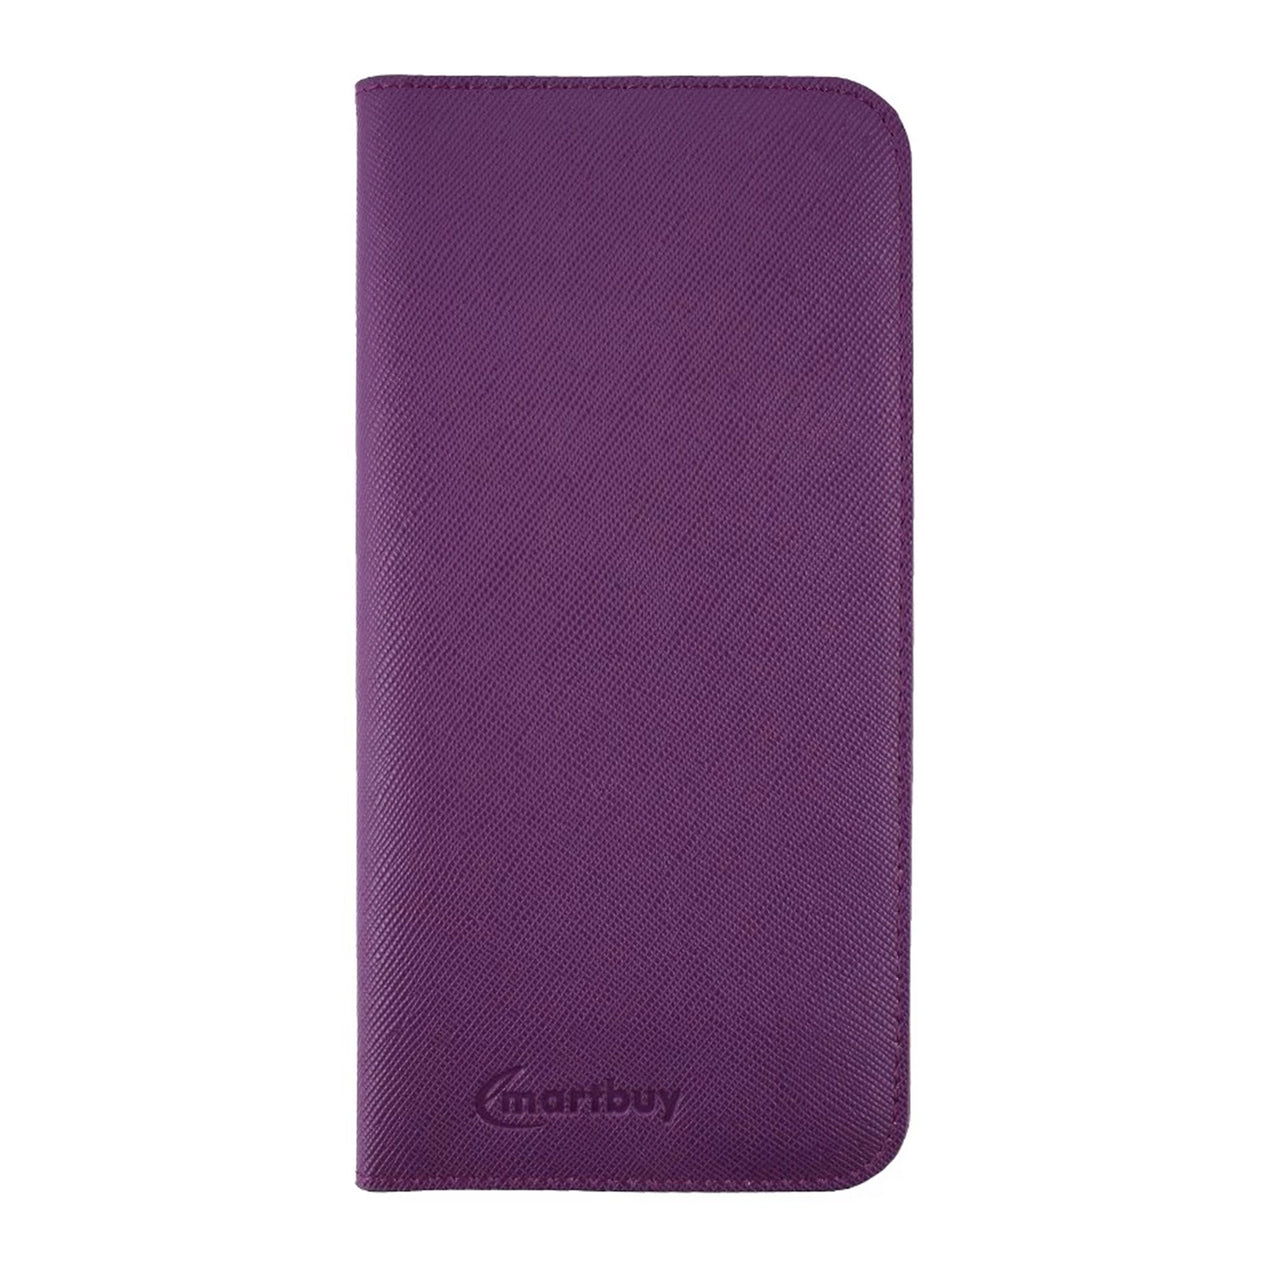 Magnetic Slim Wallet - Purple